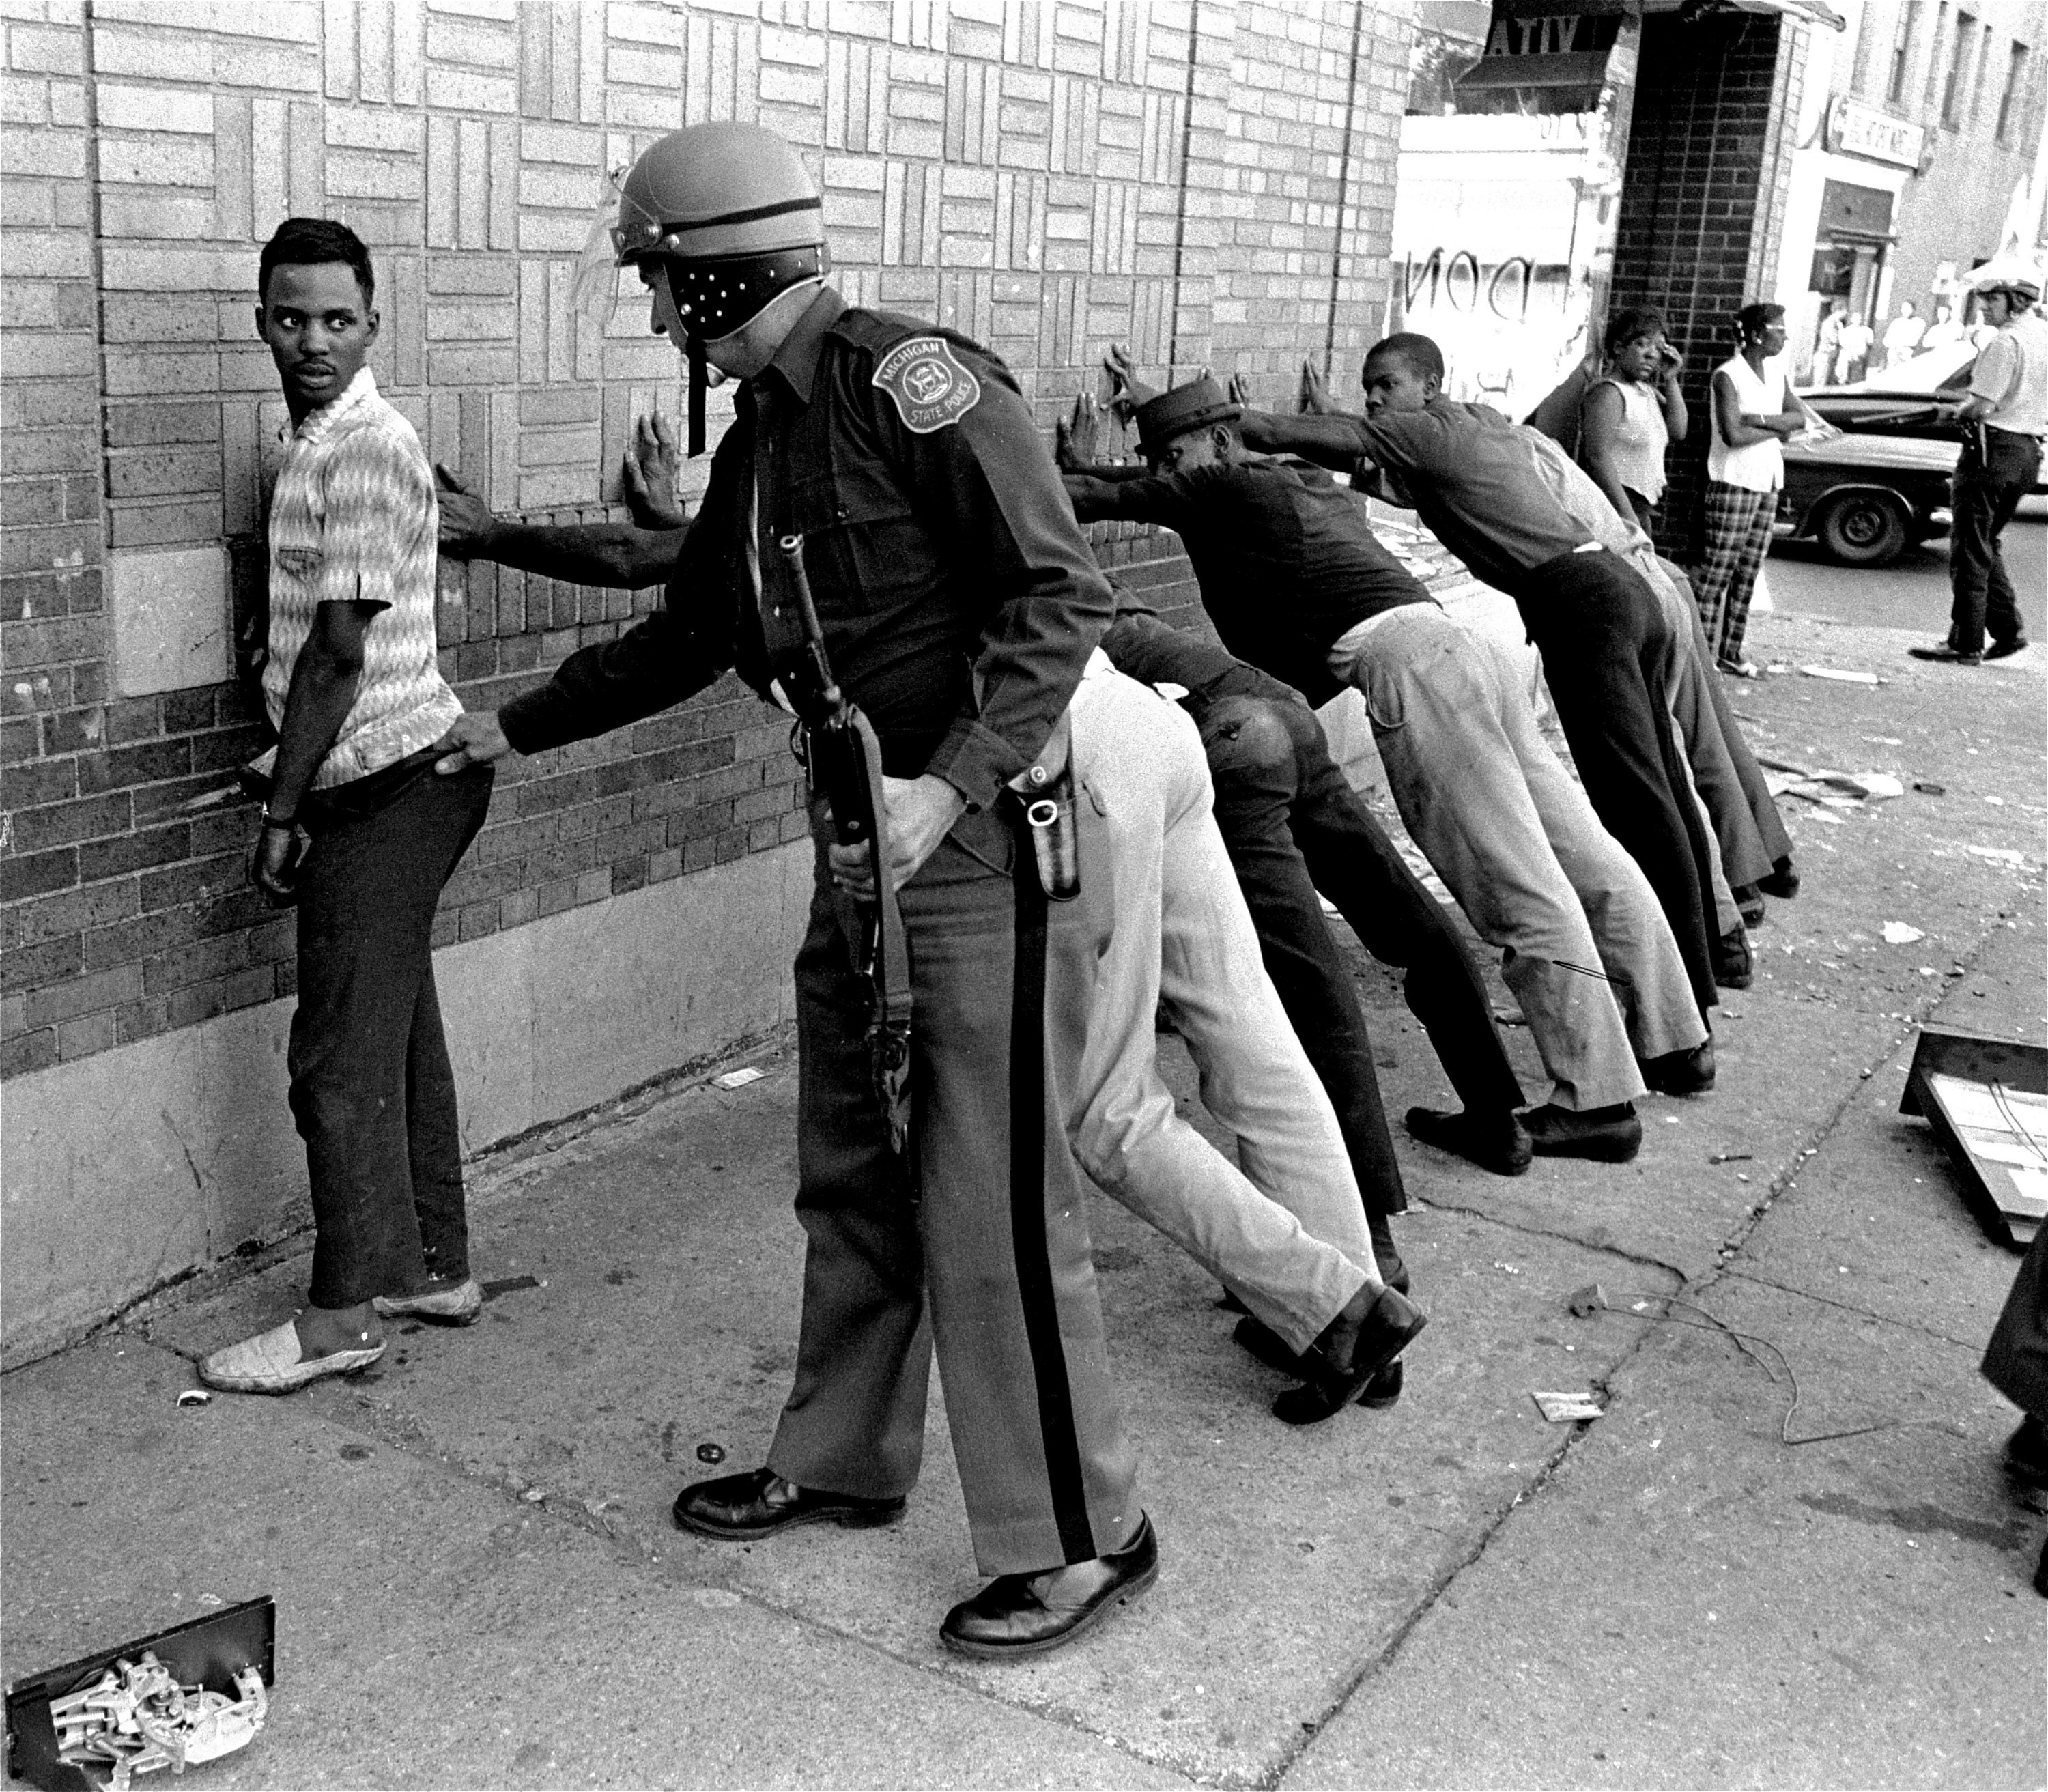 Flashback: Detroit Erupts Into Race Riots in 1967 - Rolling Stone